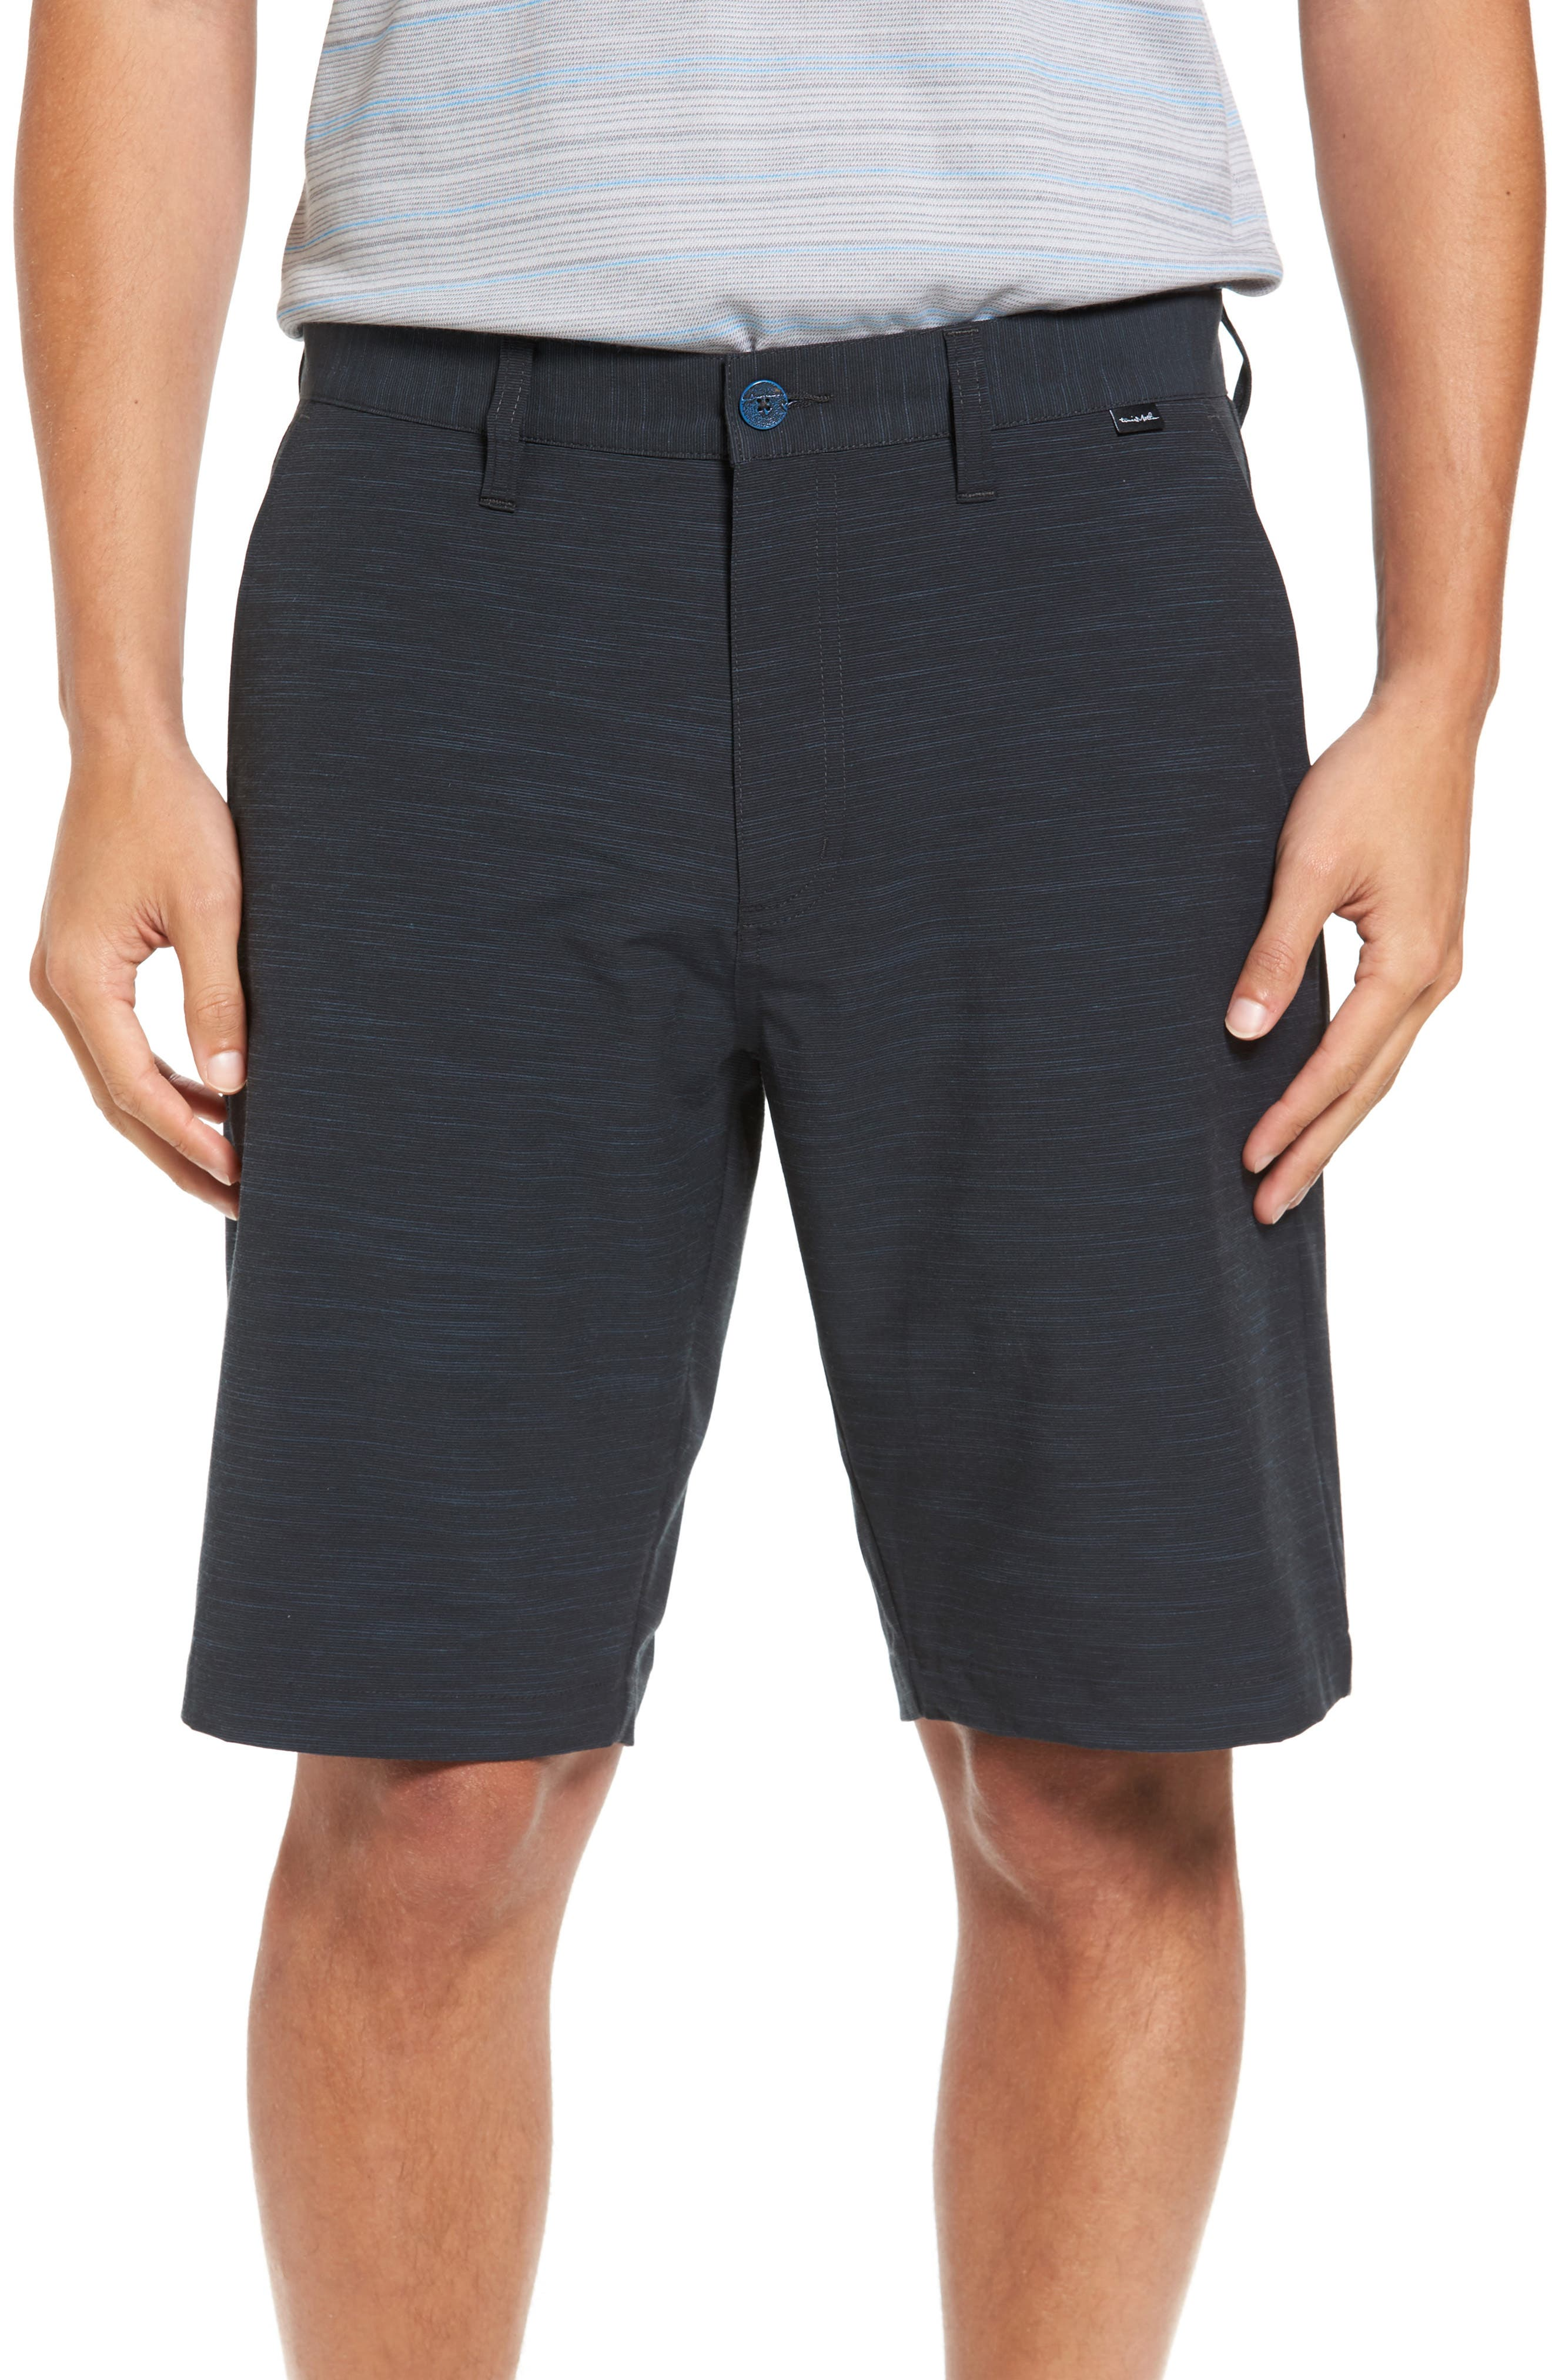 Travis Mathew Caps Golf Shorts